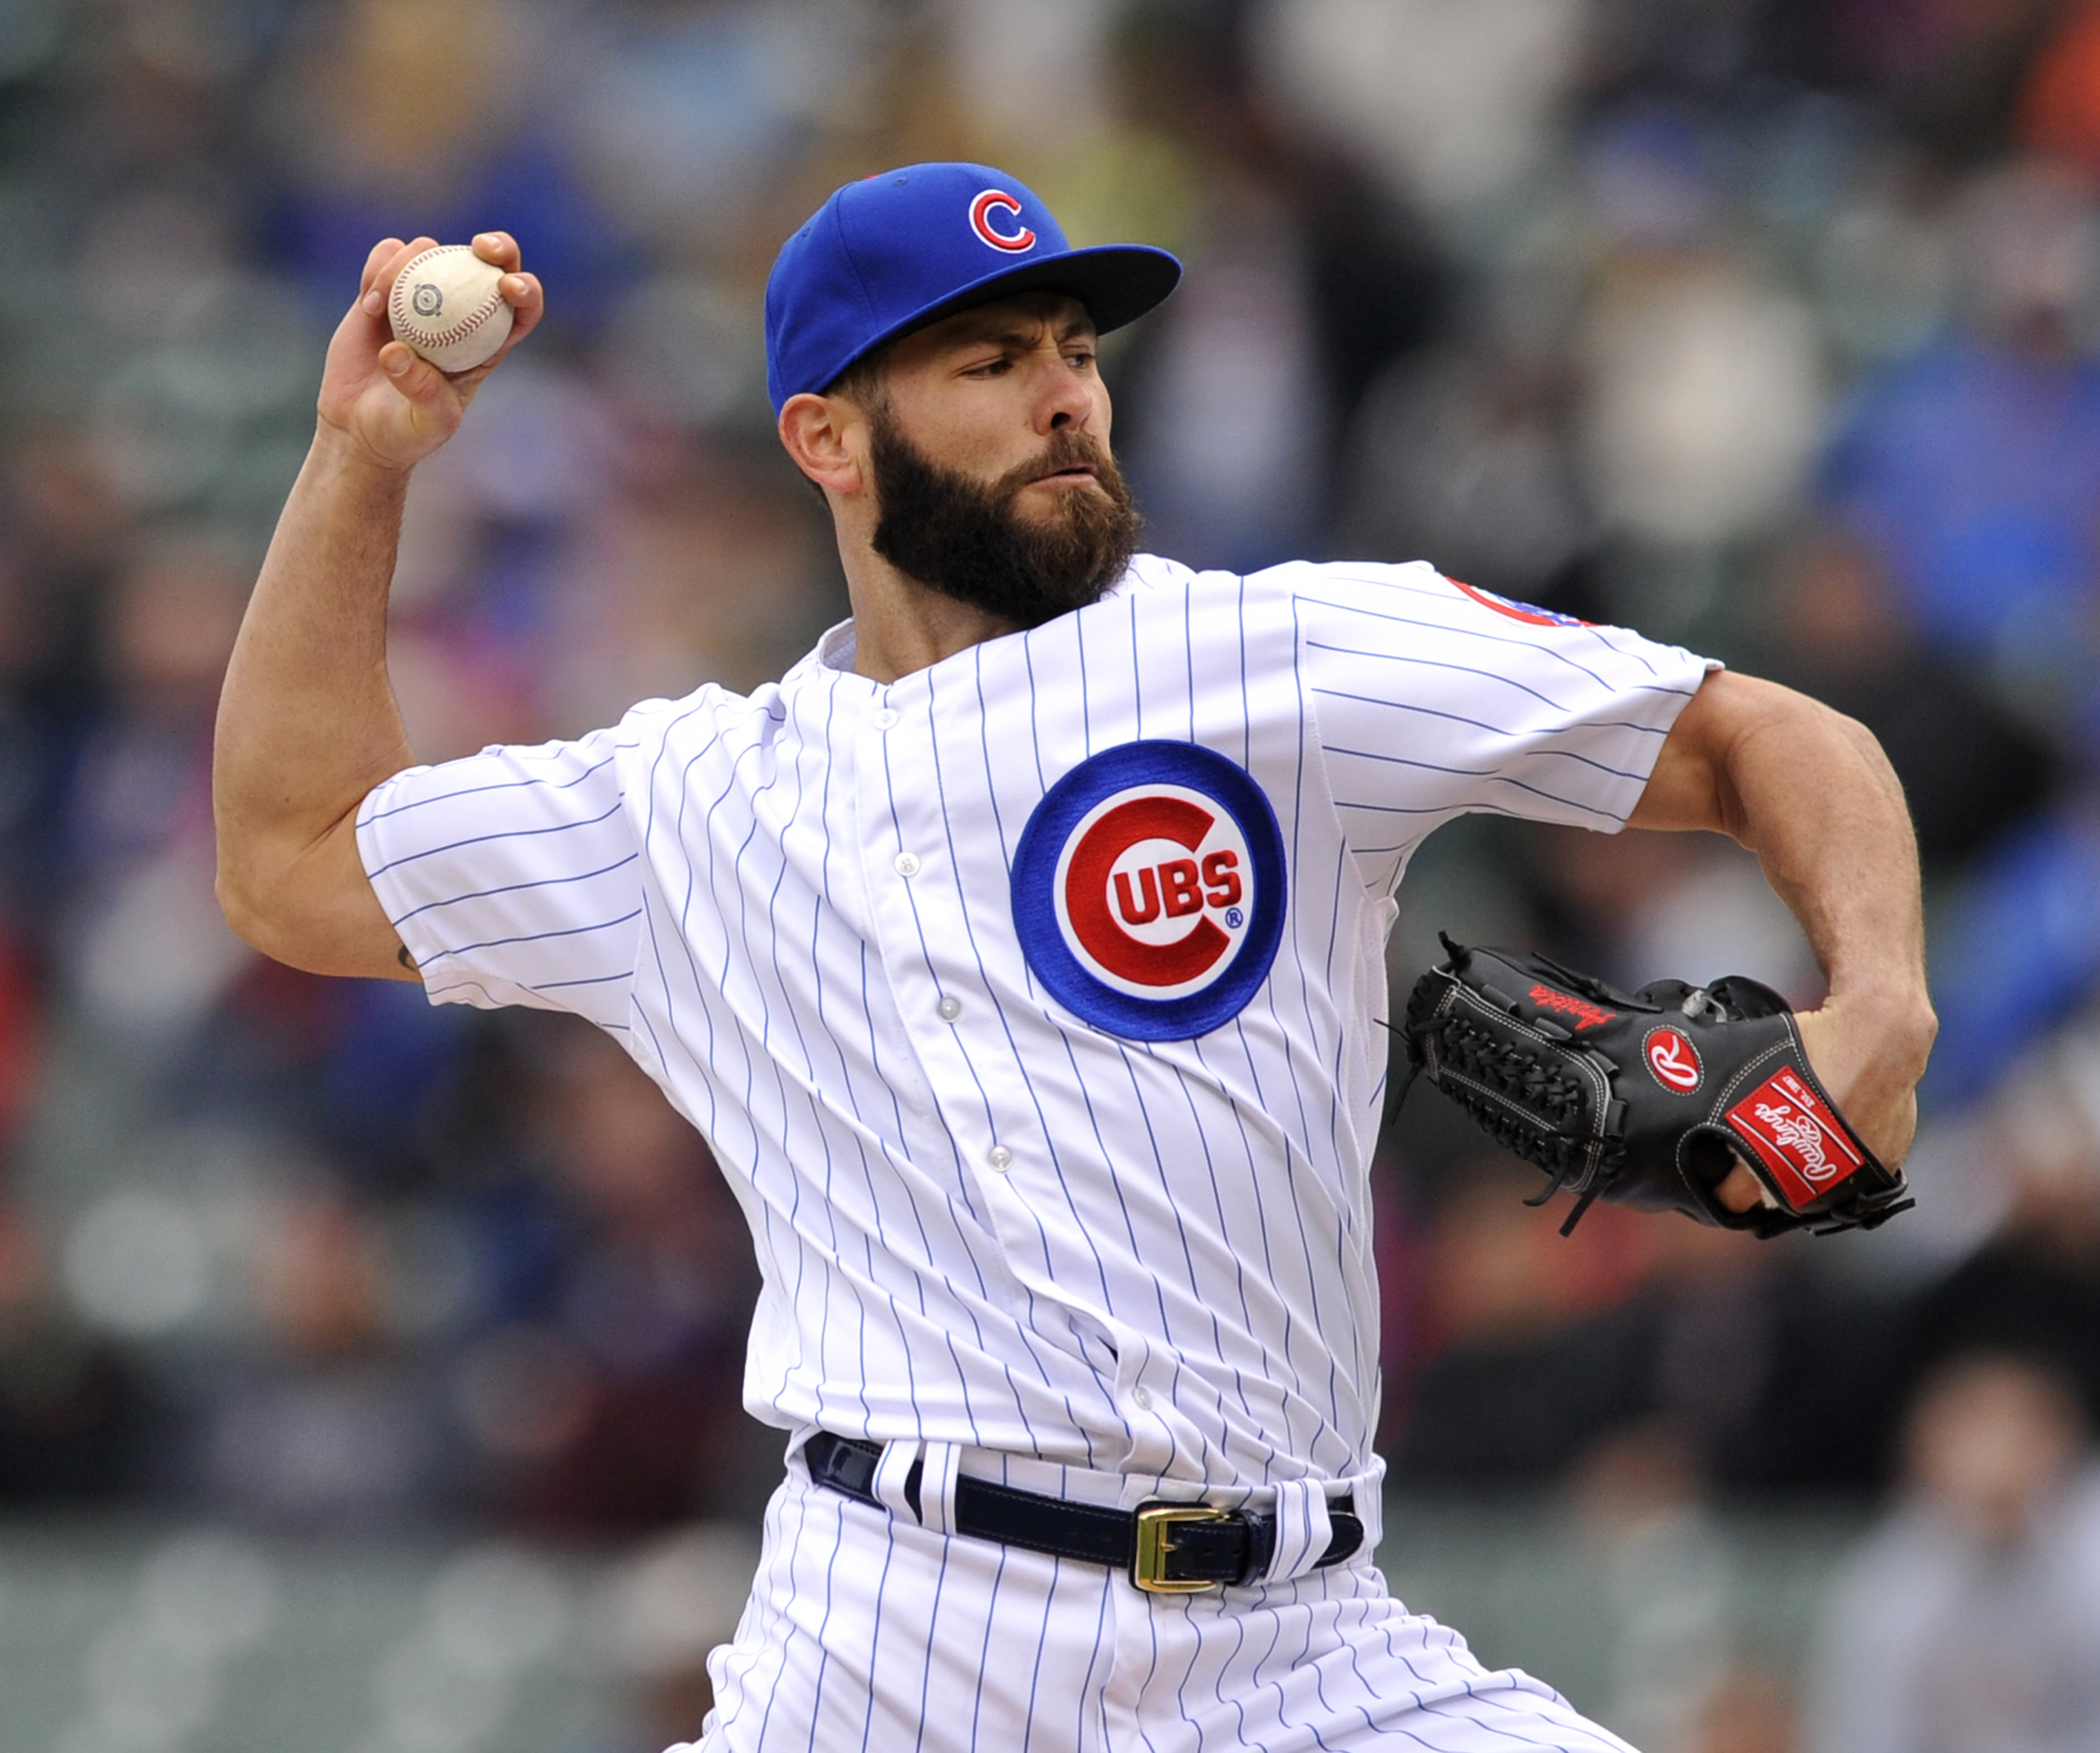 Chicago Cubs starter Jake Arrieta delivers a pitch during the first inning of a baseball game against the Milwaukee Brewers Thursday, April 28, 2016, in Chicago. (AP Photo/Paul Beaty)